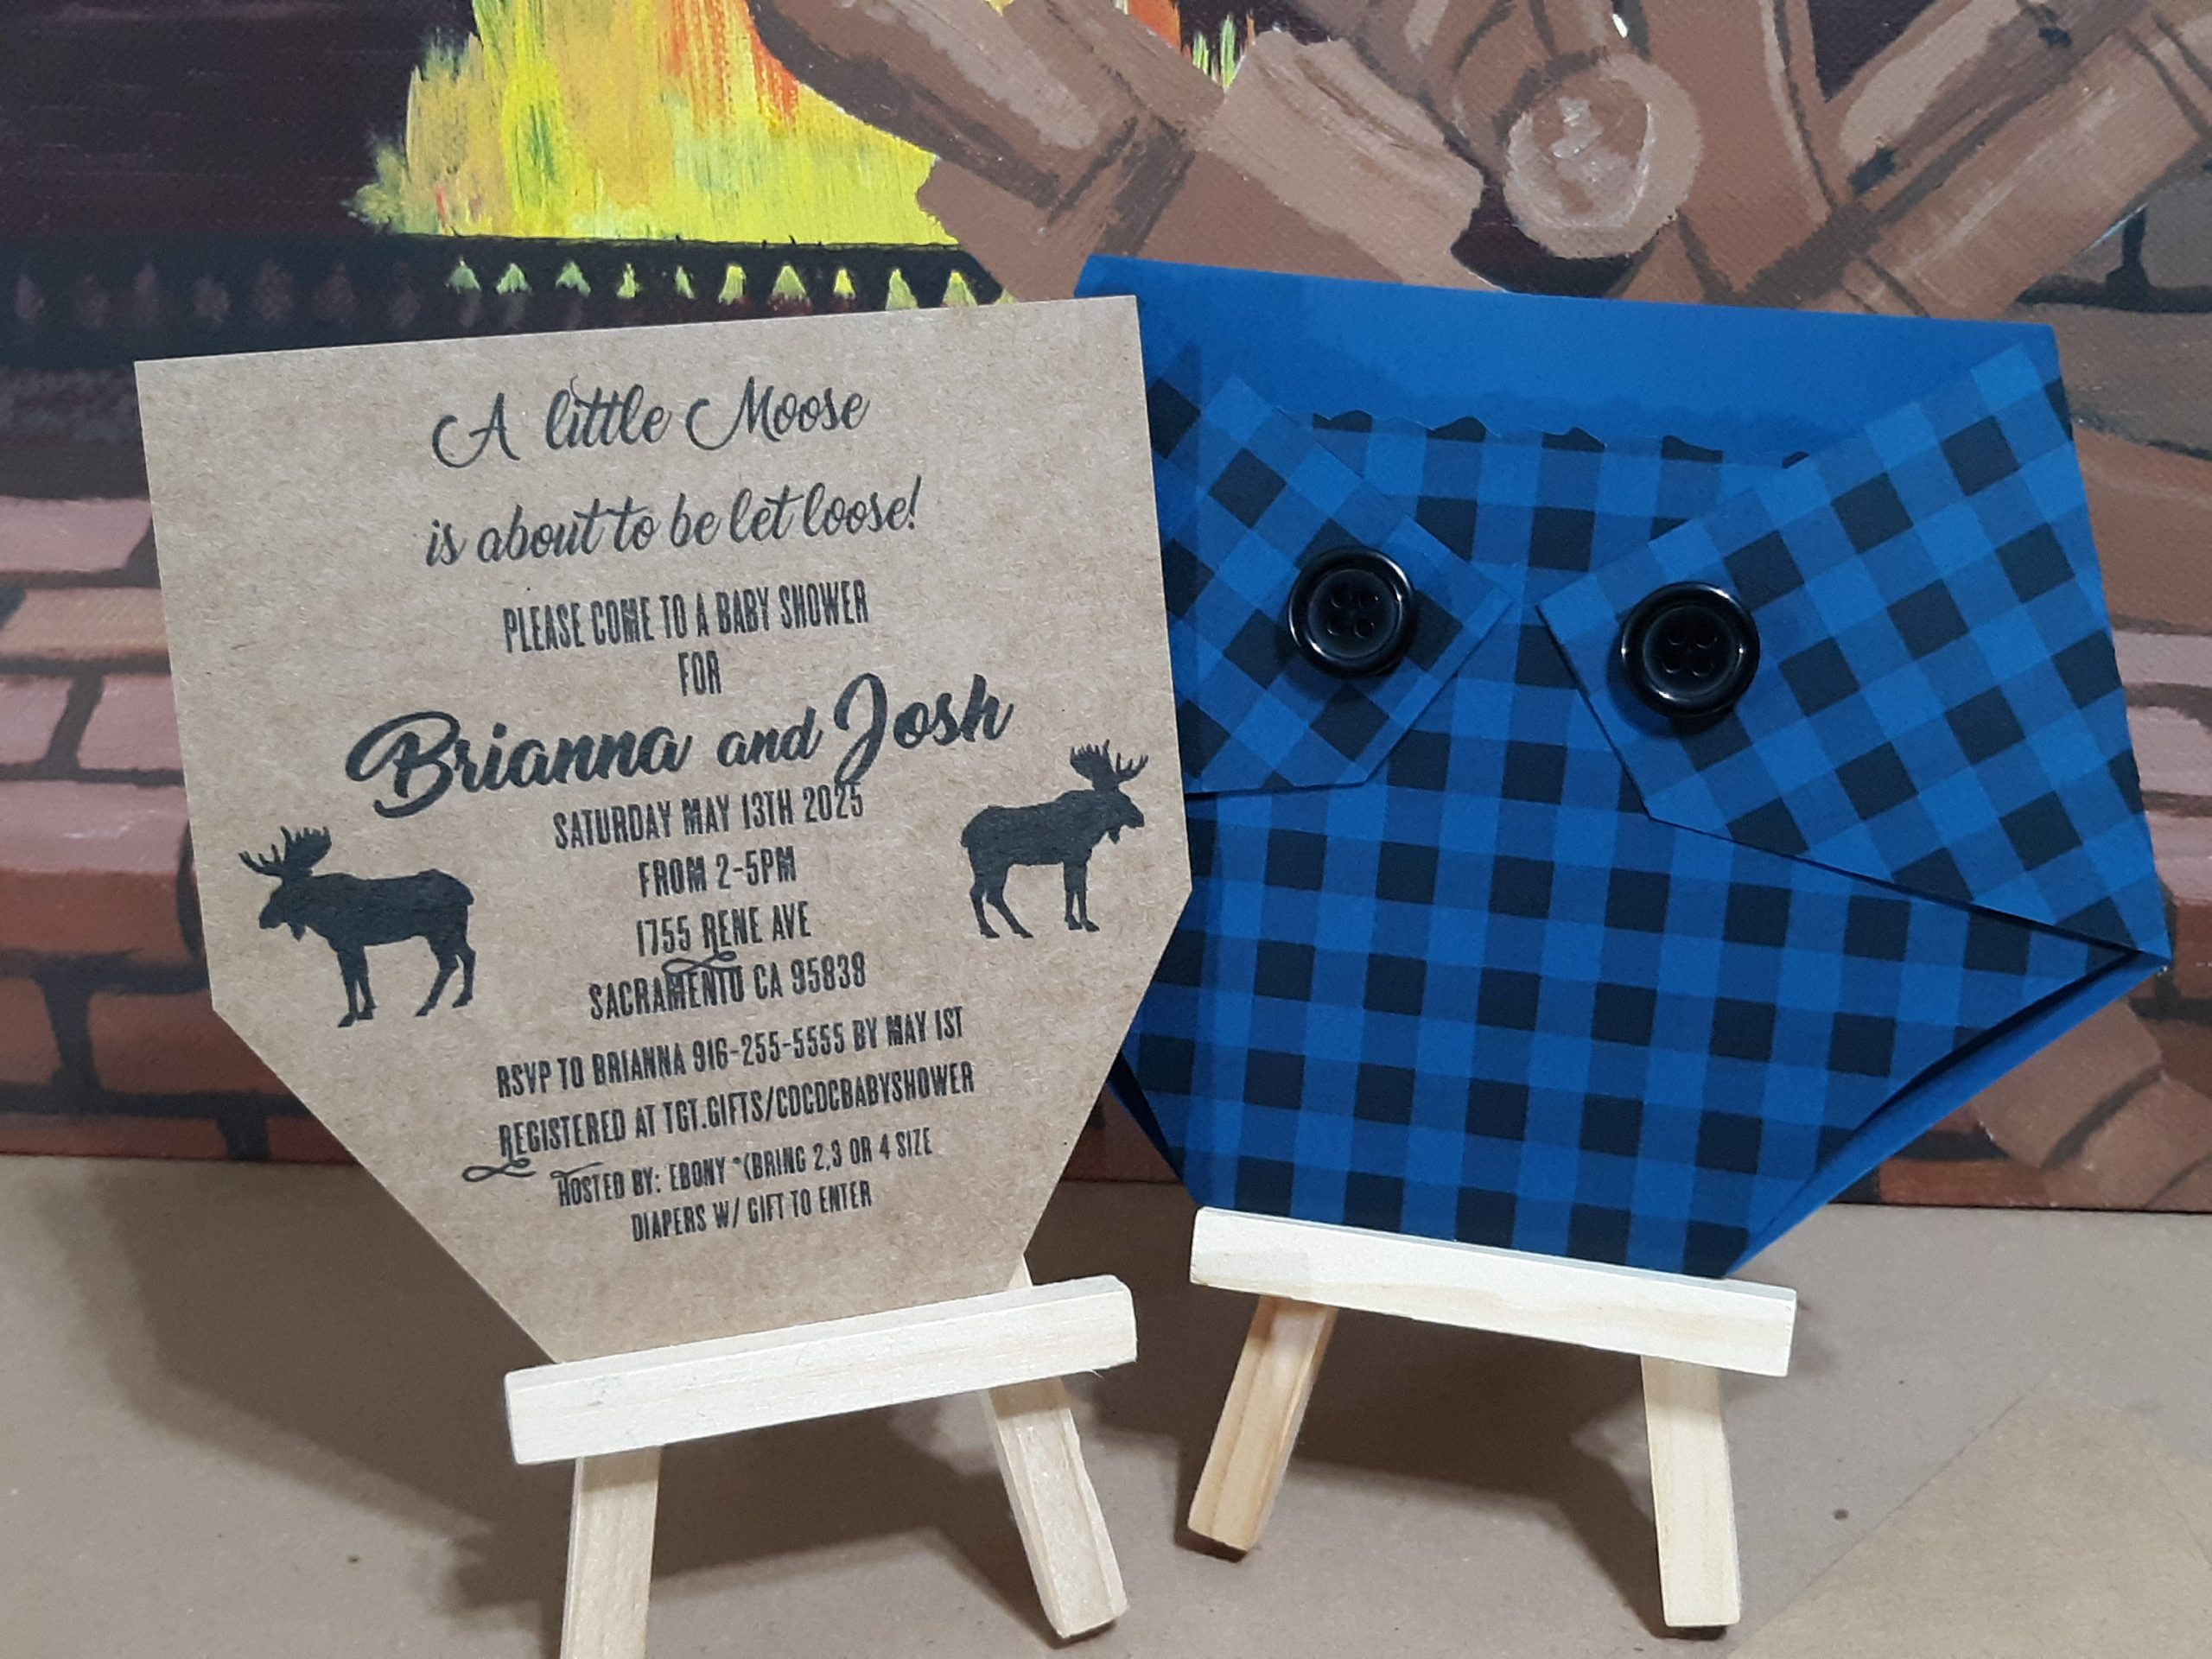 Plaid Baby Shower Invitation Moose Diaper Shaped Invitations Buffalo Plaid Wilderness Party Fall Baby Shower Bonfire Camp Kards By Kaylee The buffalo bills, and the recap of. plaid baby shower invitation moose diaper shaped invitations buffalo plaid wilderness party fall baby shower bonfire camp